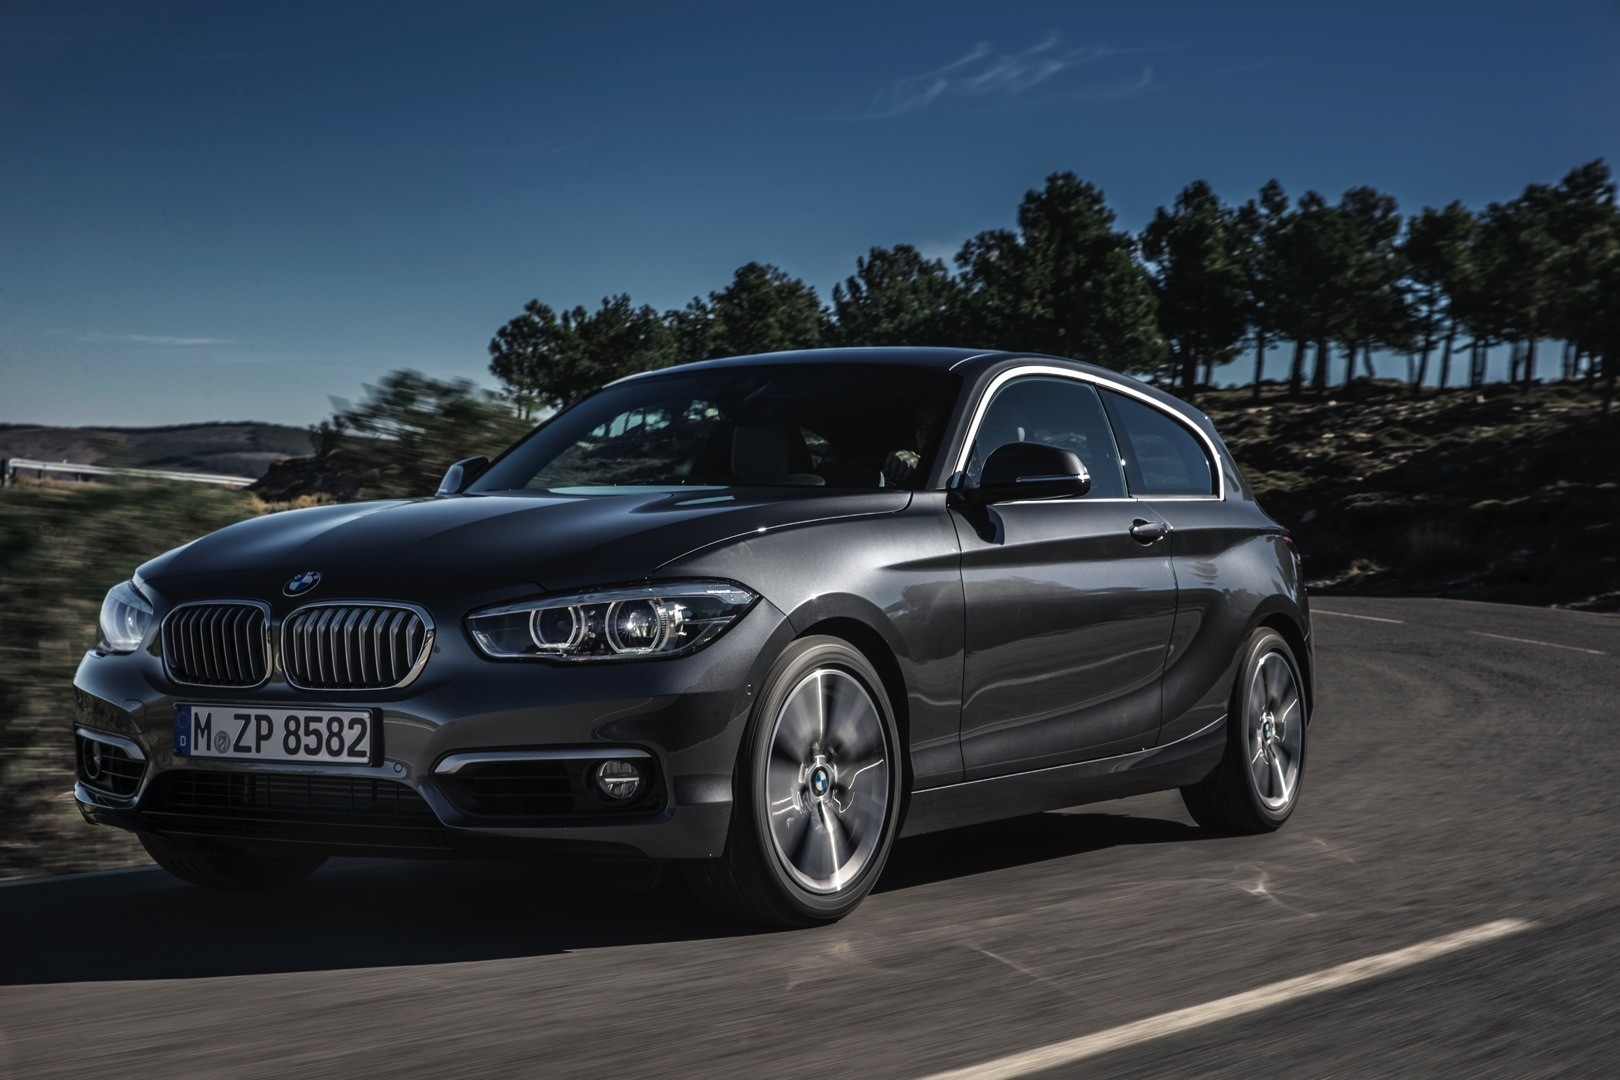 2015 bmw 1 series facelift engine guide 5 new diesels first 3 cylinder mills autoevolution. Black Bedroom Furniture Sets. Home Design Ideas